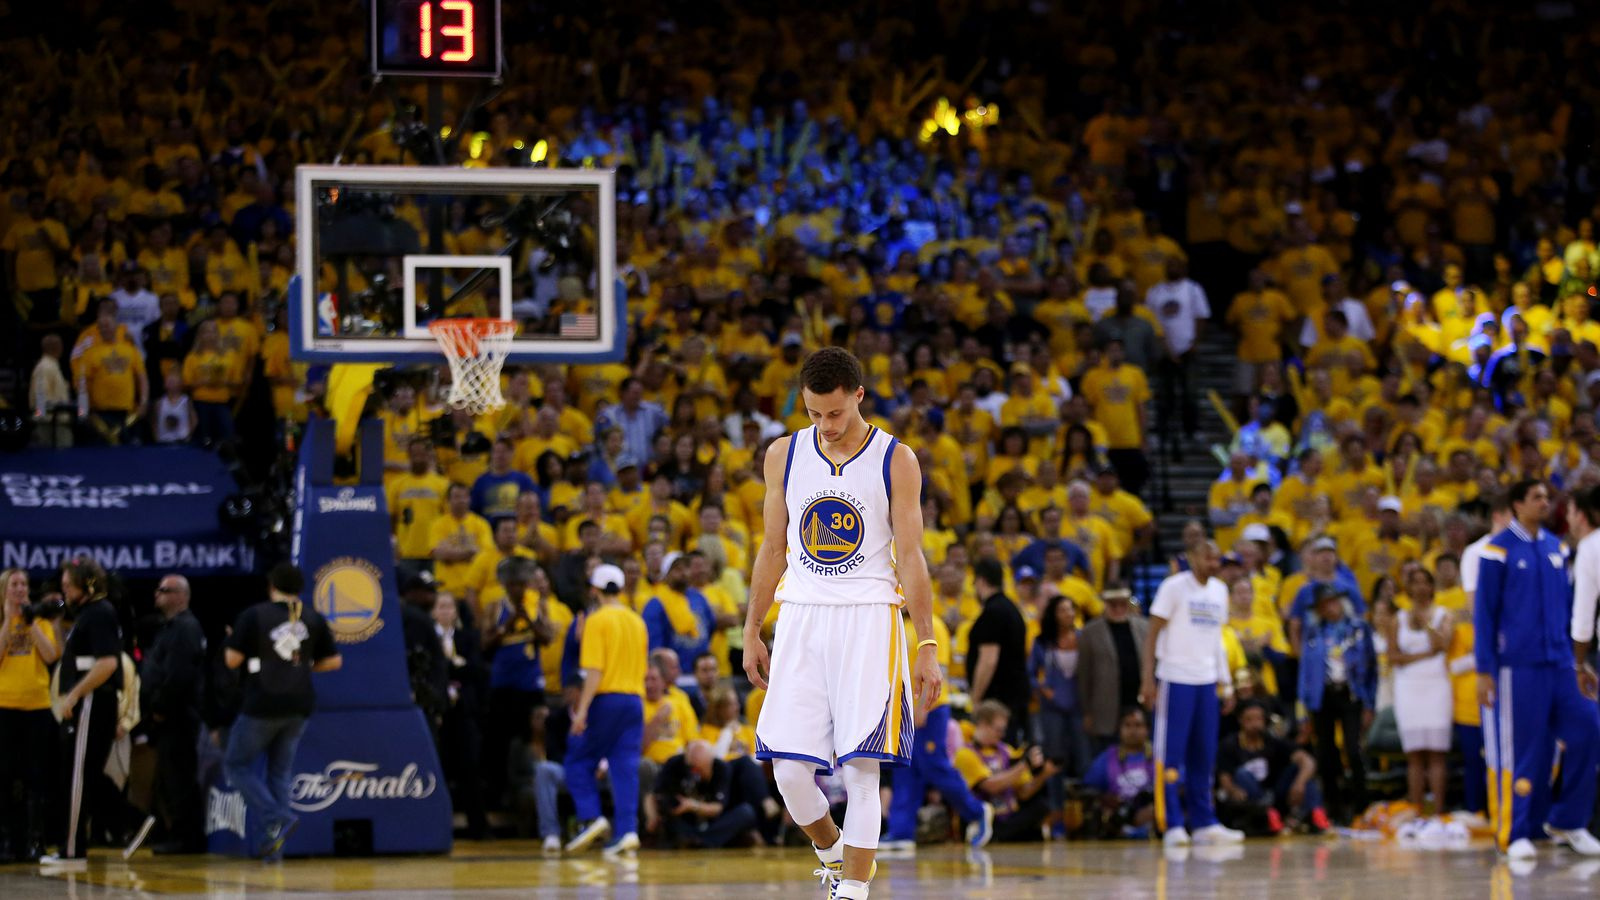 Warriors vs Cavaliers, NBA Finals 2015: Golden State falls ...